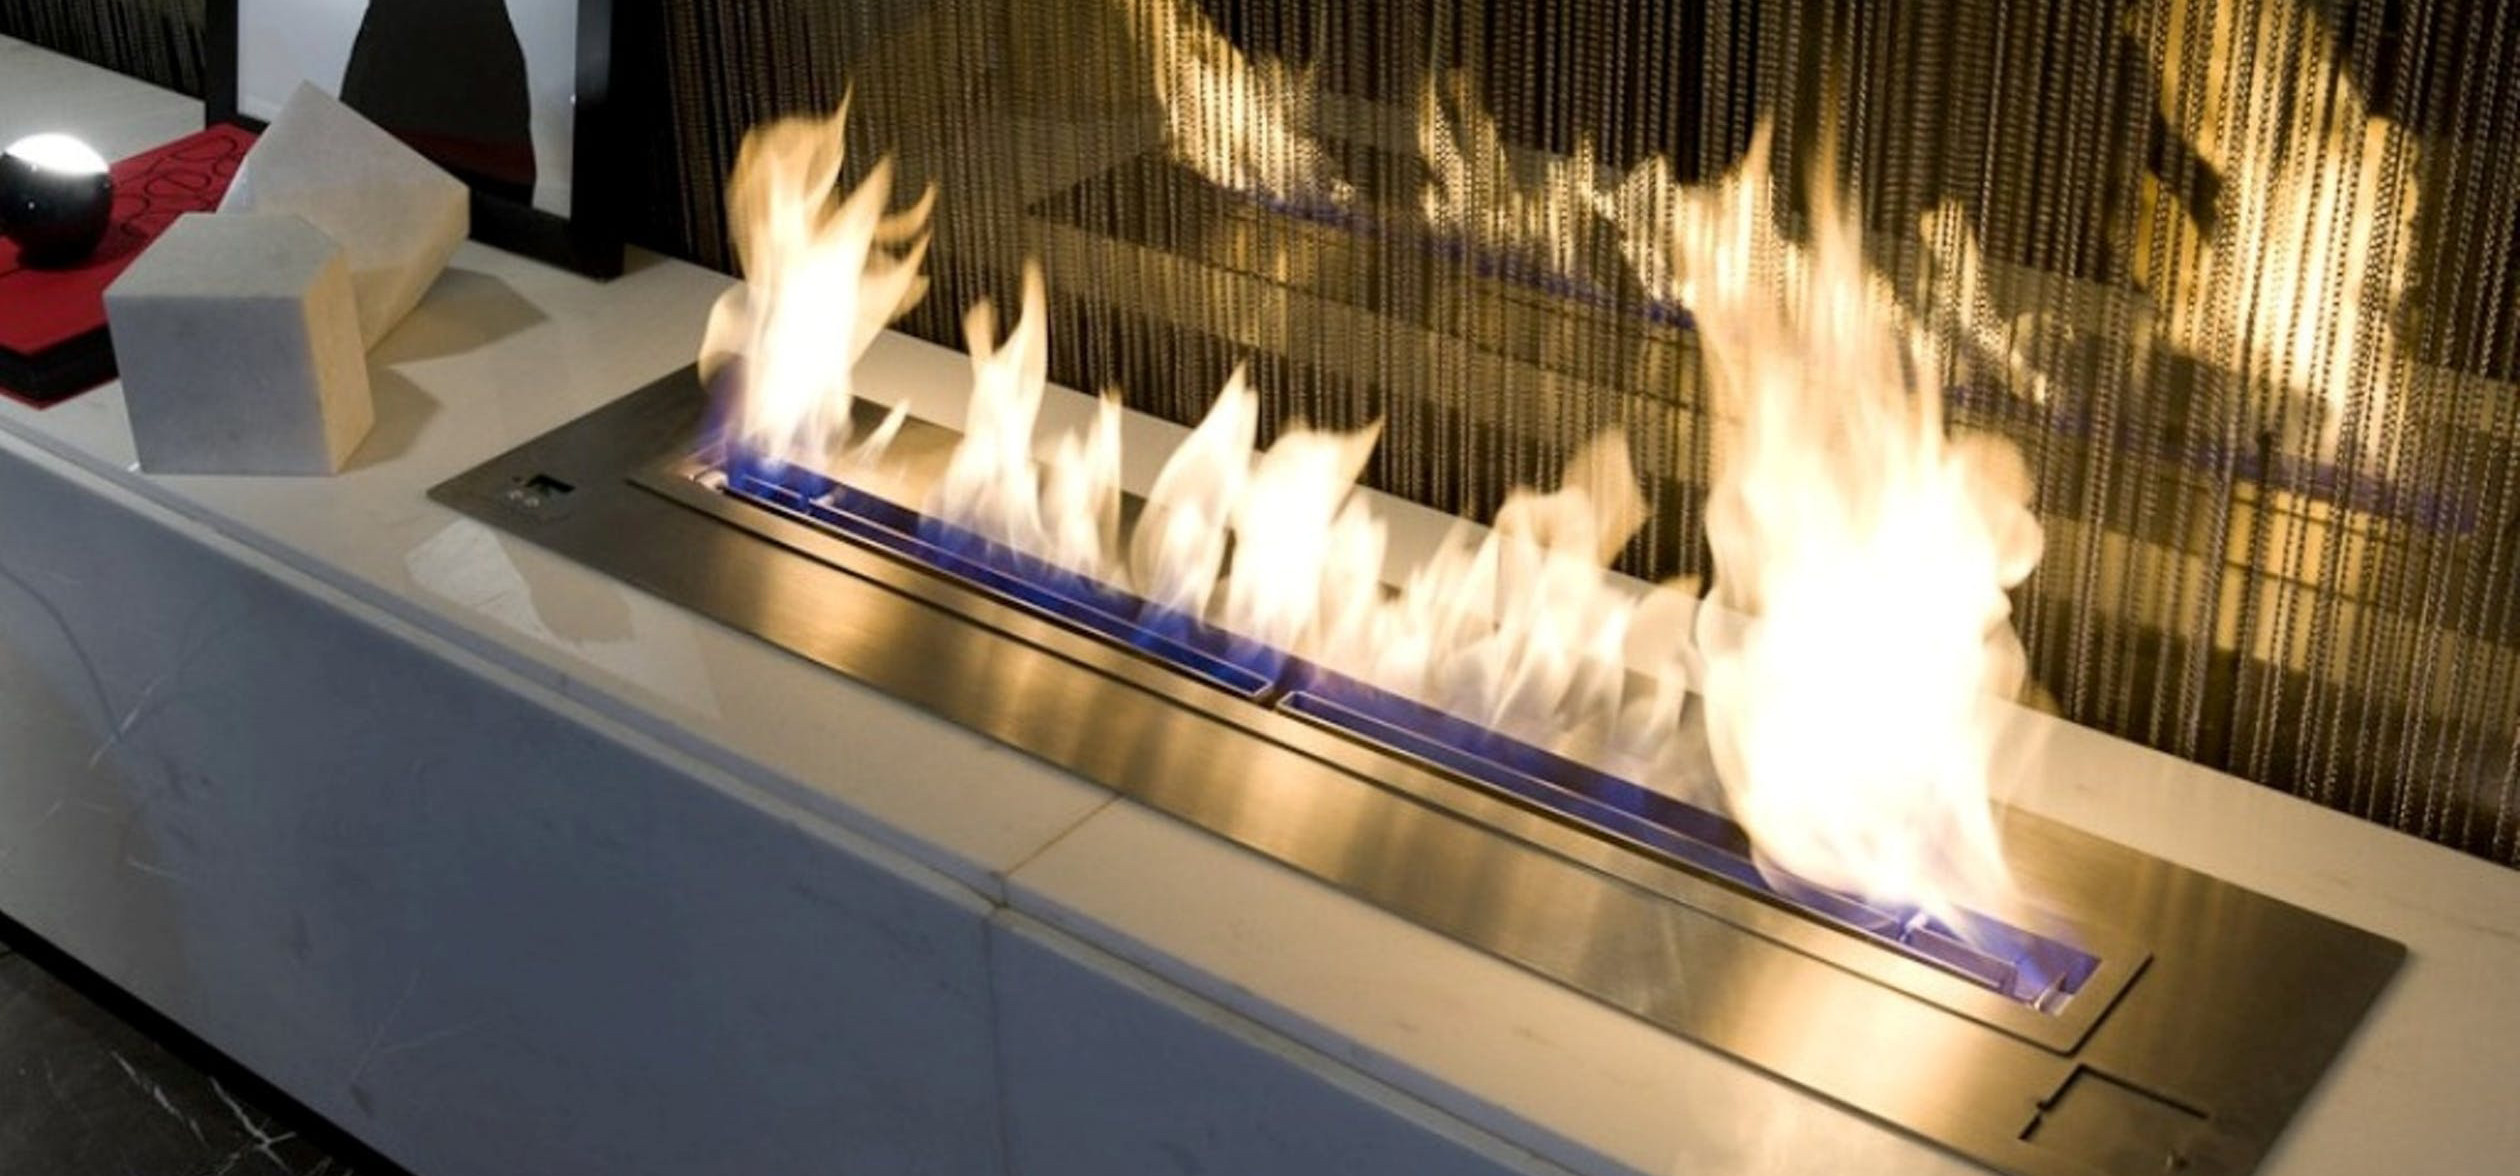 choosing-a-gas-fireplace-for-your-home-1.jpeg